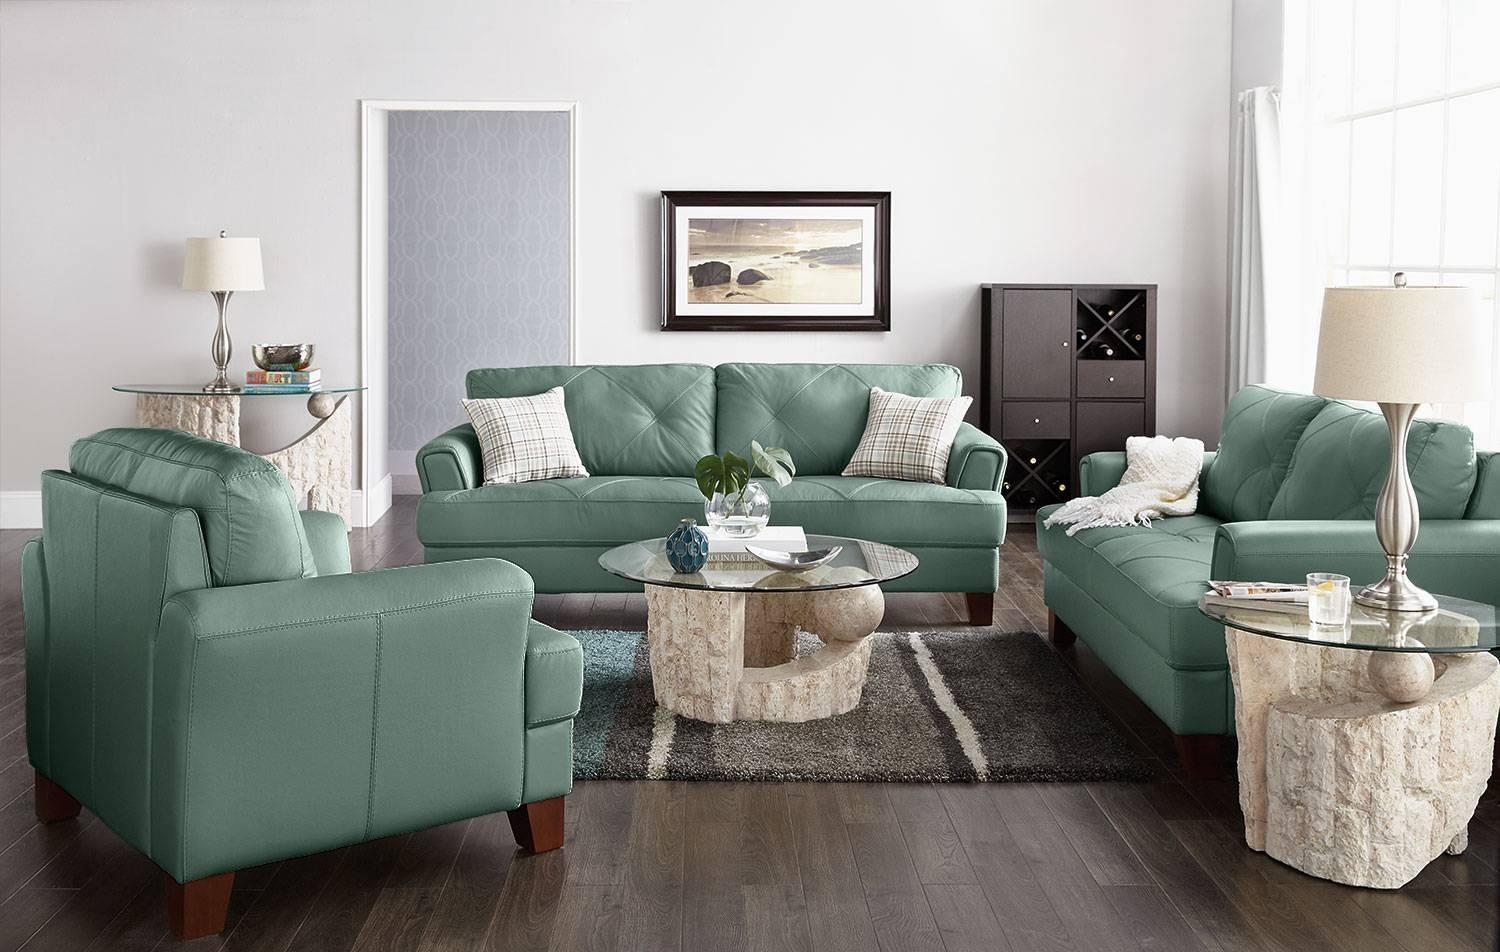 Vita 100% Genuine Leather Sofa – Sea Foam | The Brick intended for Seafoam Green Couches (Image 15 of 15)